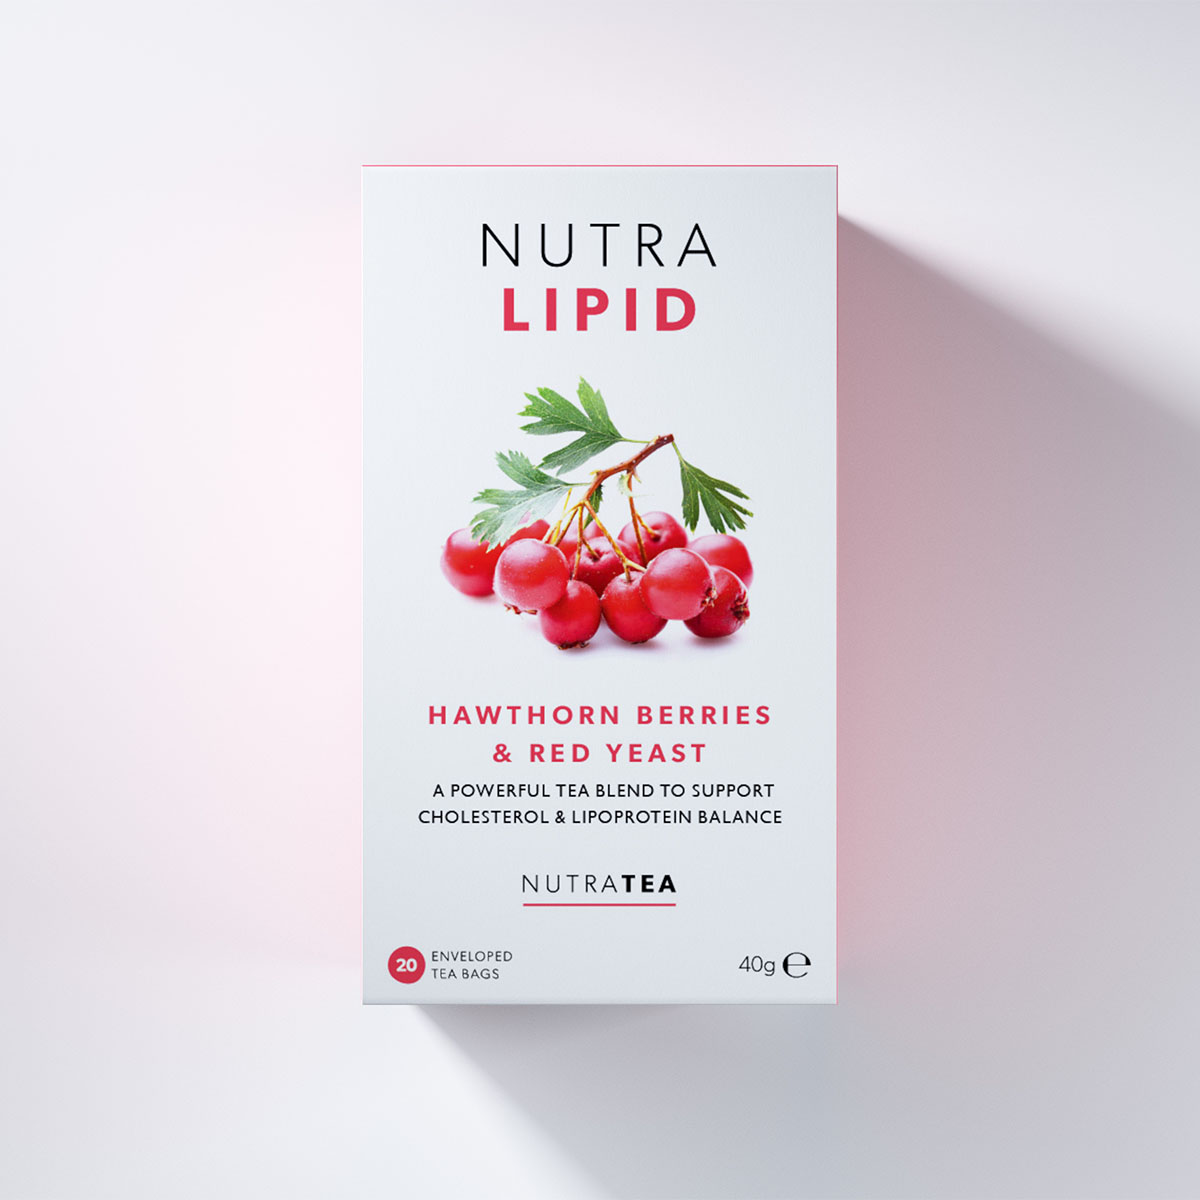 059_Box_NL_Hawthorn Berries Red Yeast_Box_Front